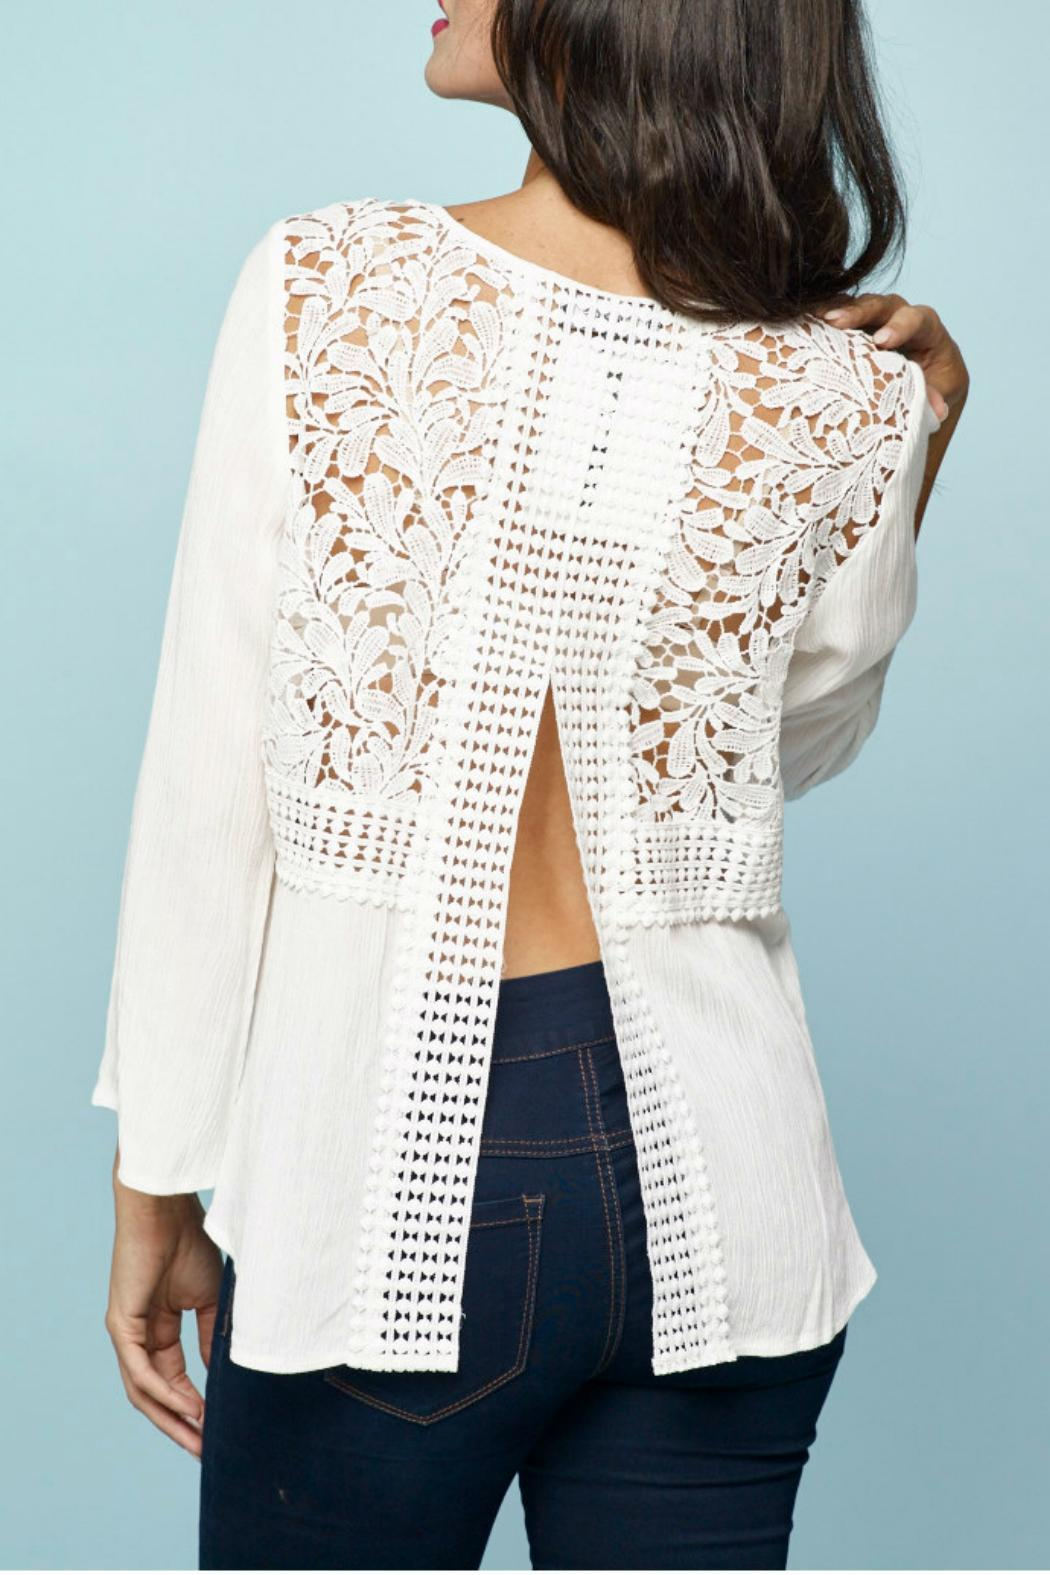 Minkas White Lace Top from Canada by Goldcoast — Shoptiques